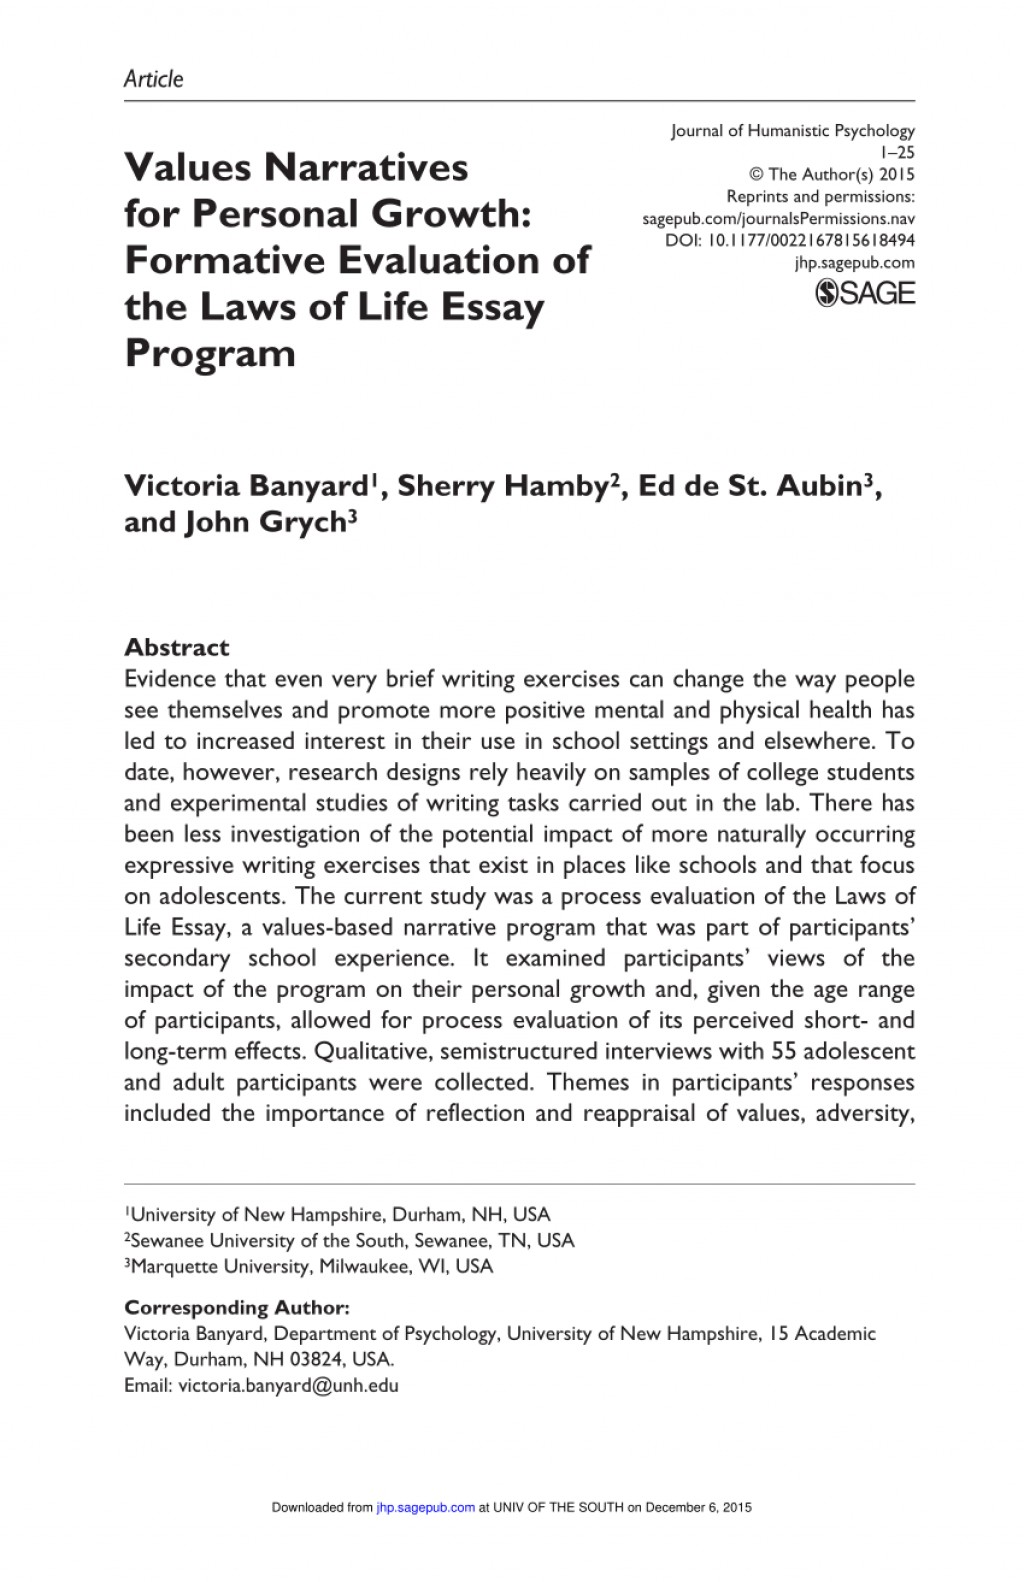 008 Essay Example Largepreview Law Of Awesome Life Laws Contest Ohio 2016 Competition Bahamas 2018 Large